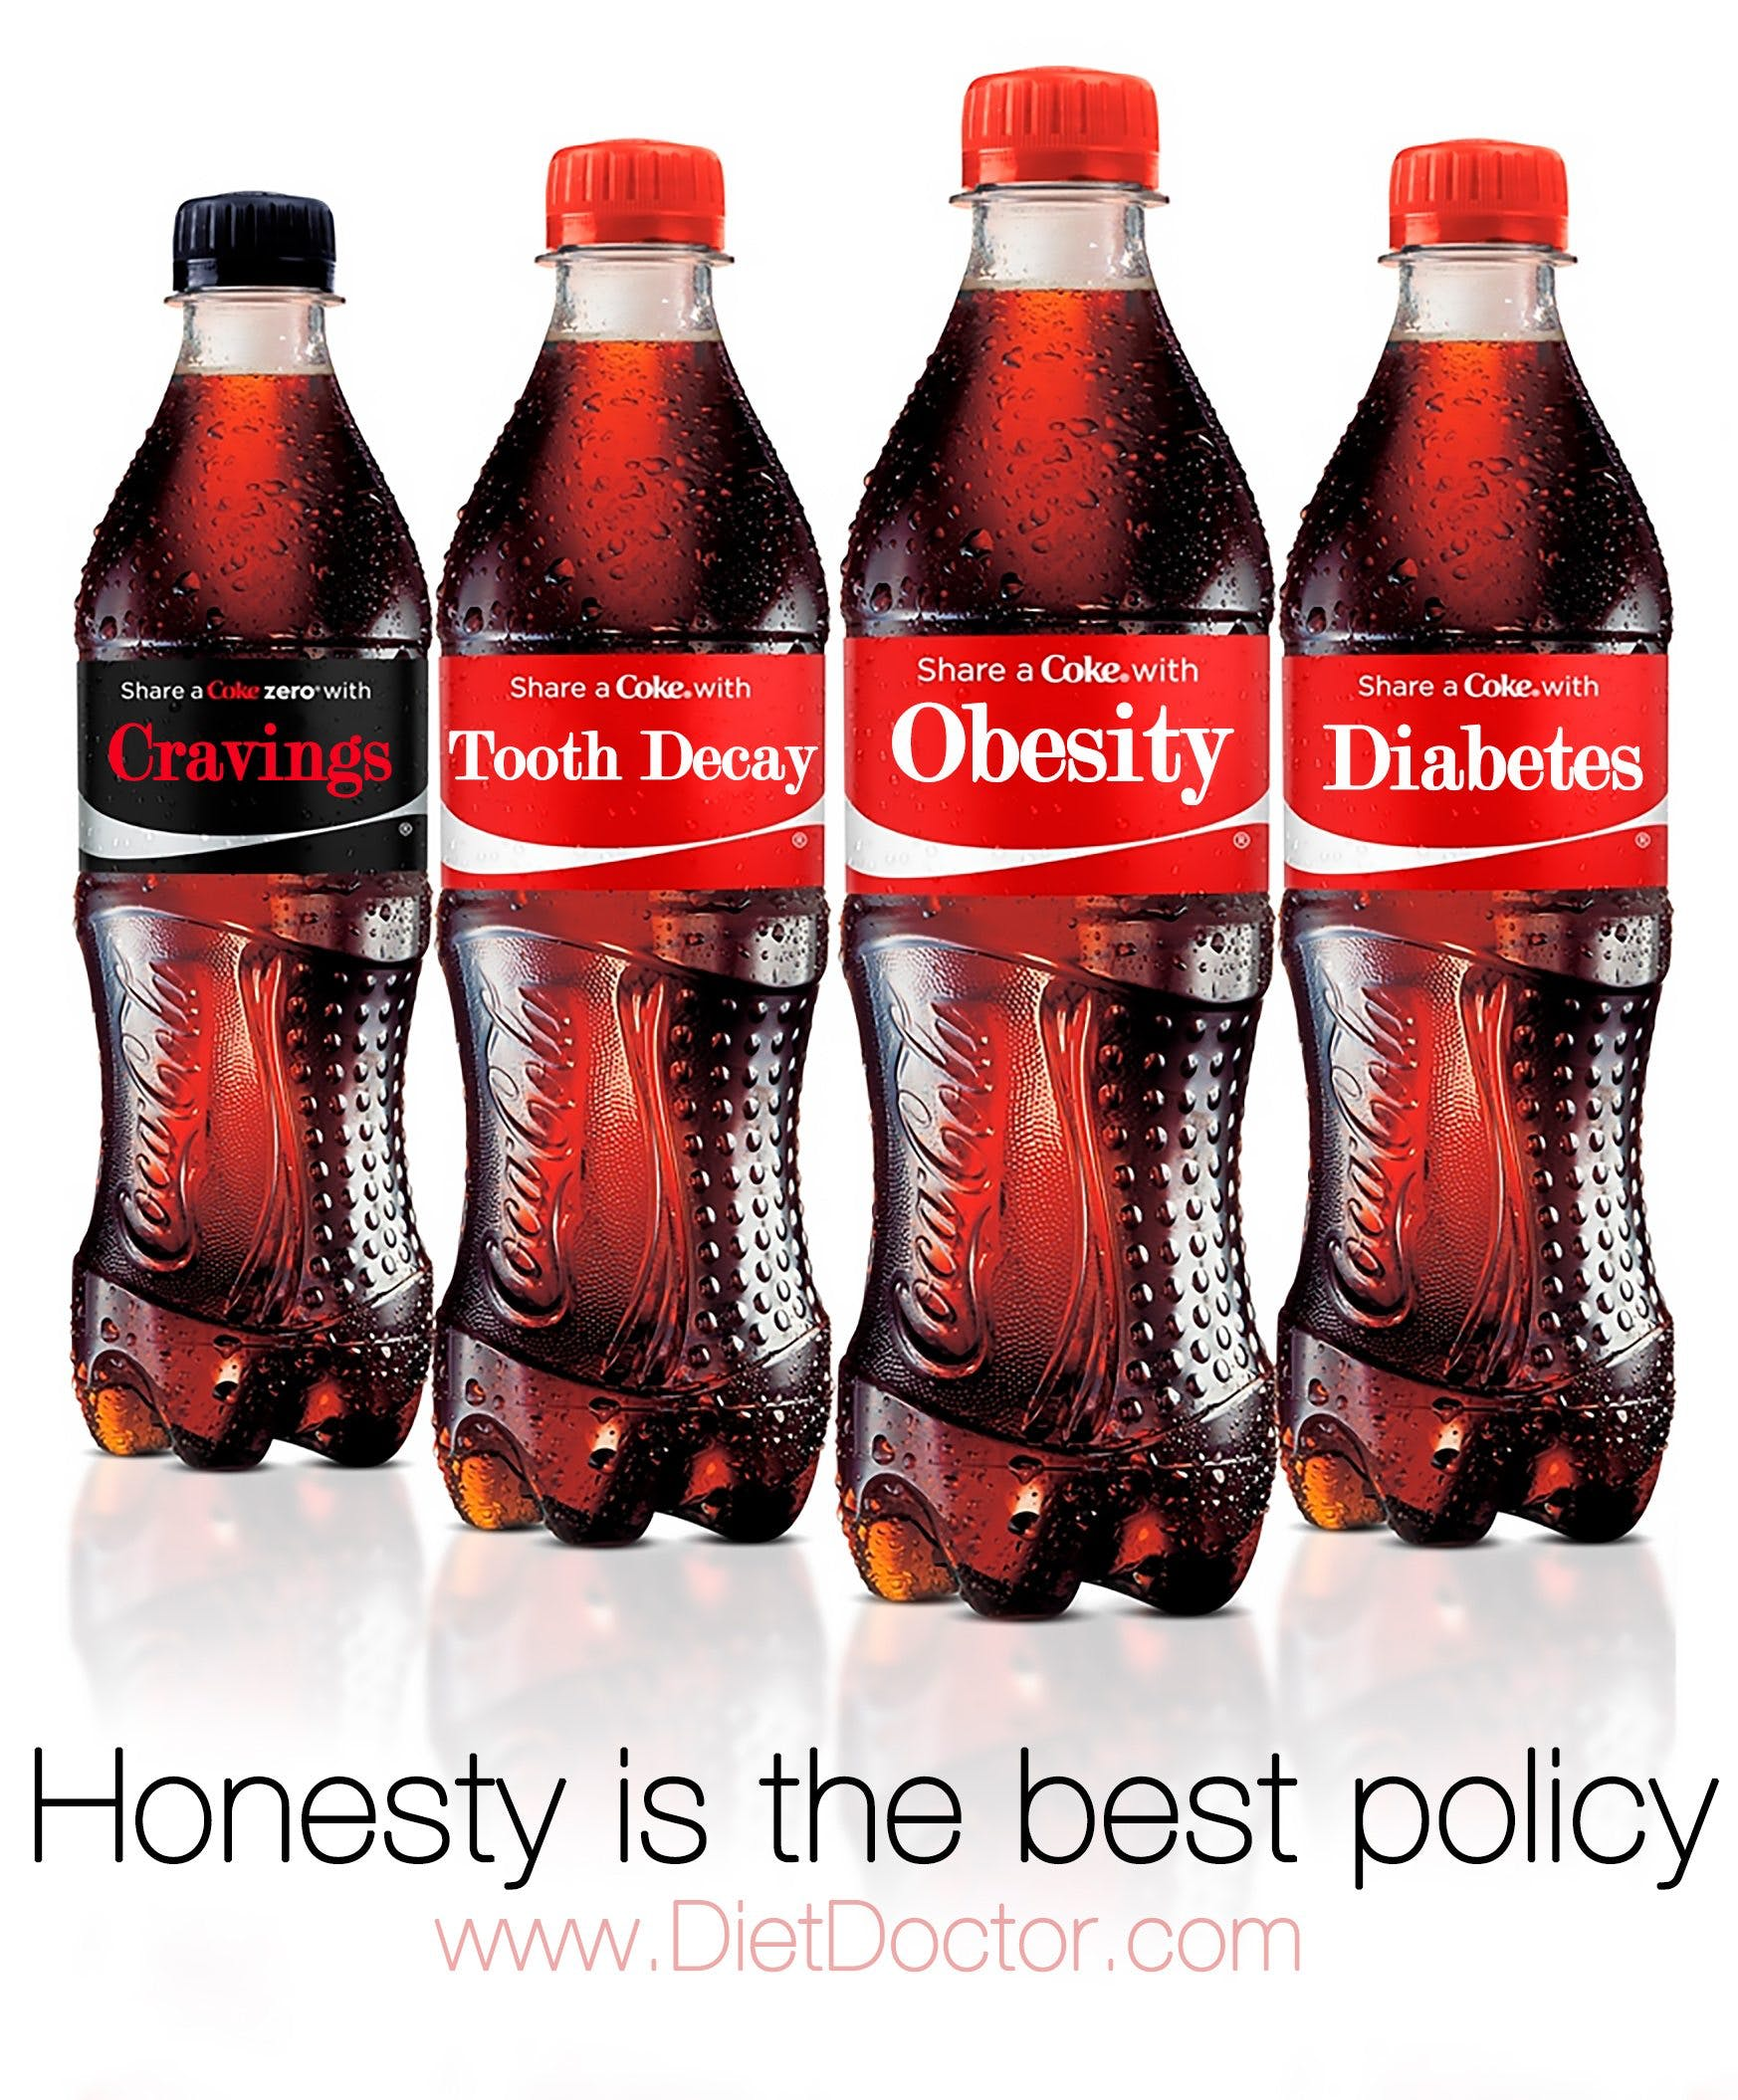 Share a Coke With Obesity